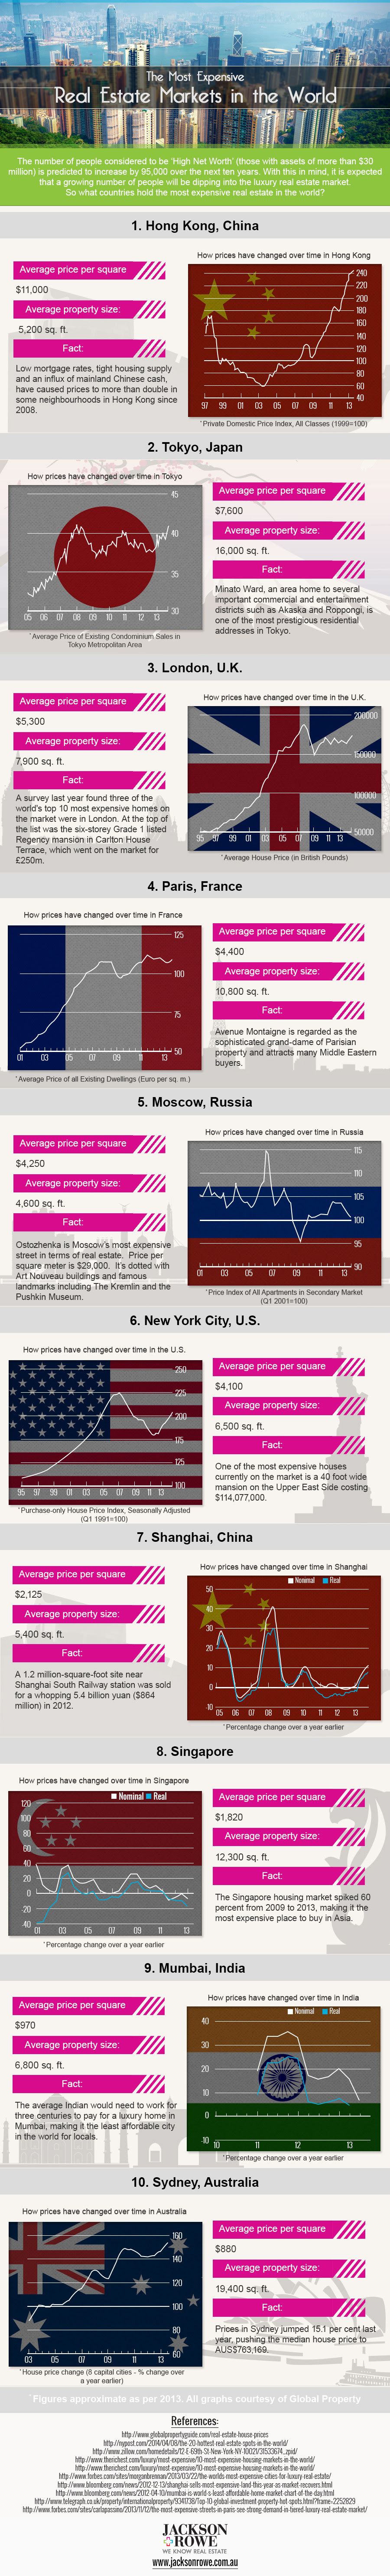 Infographic: The Most Expensive Real Estate Markets in the World #infographic